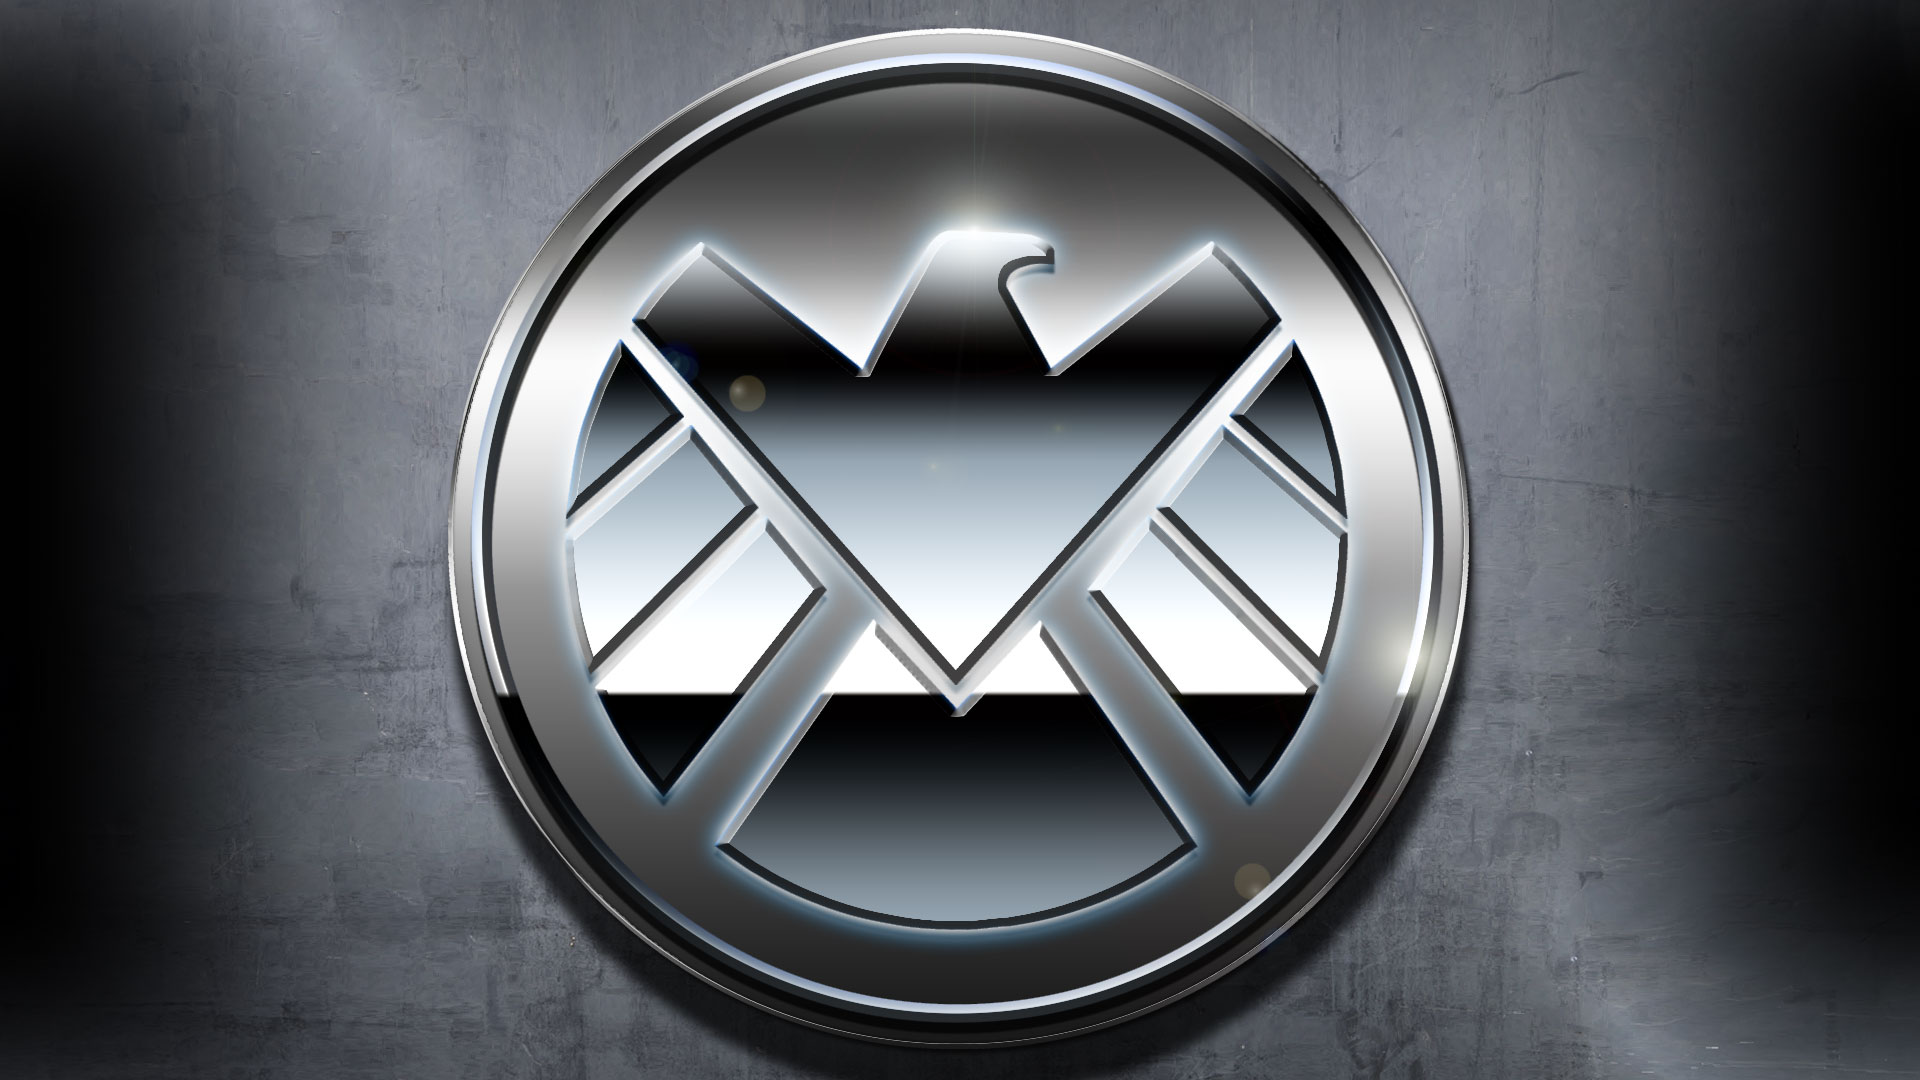 Top Agents Of Shield Logo Images for Pinterest 1920x1080